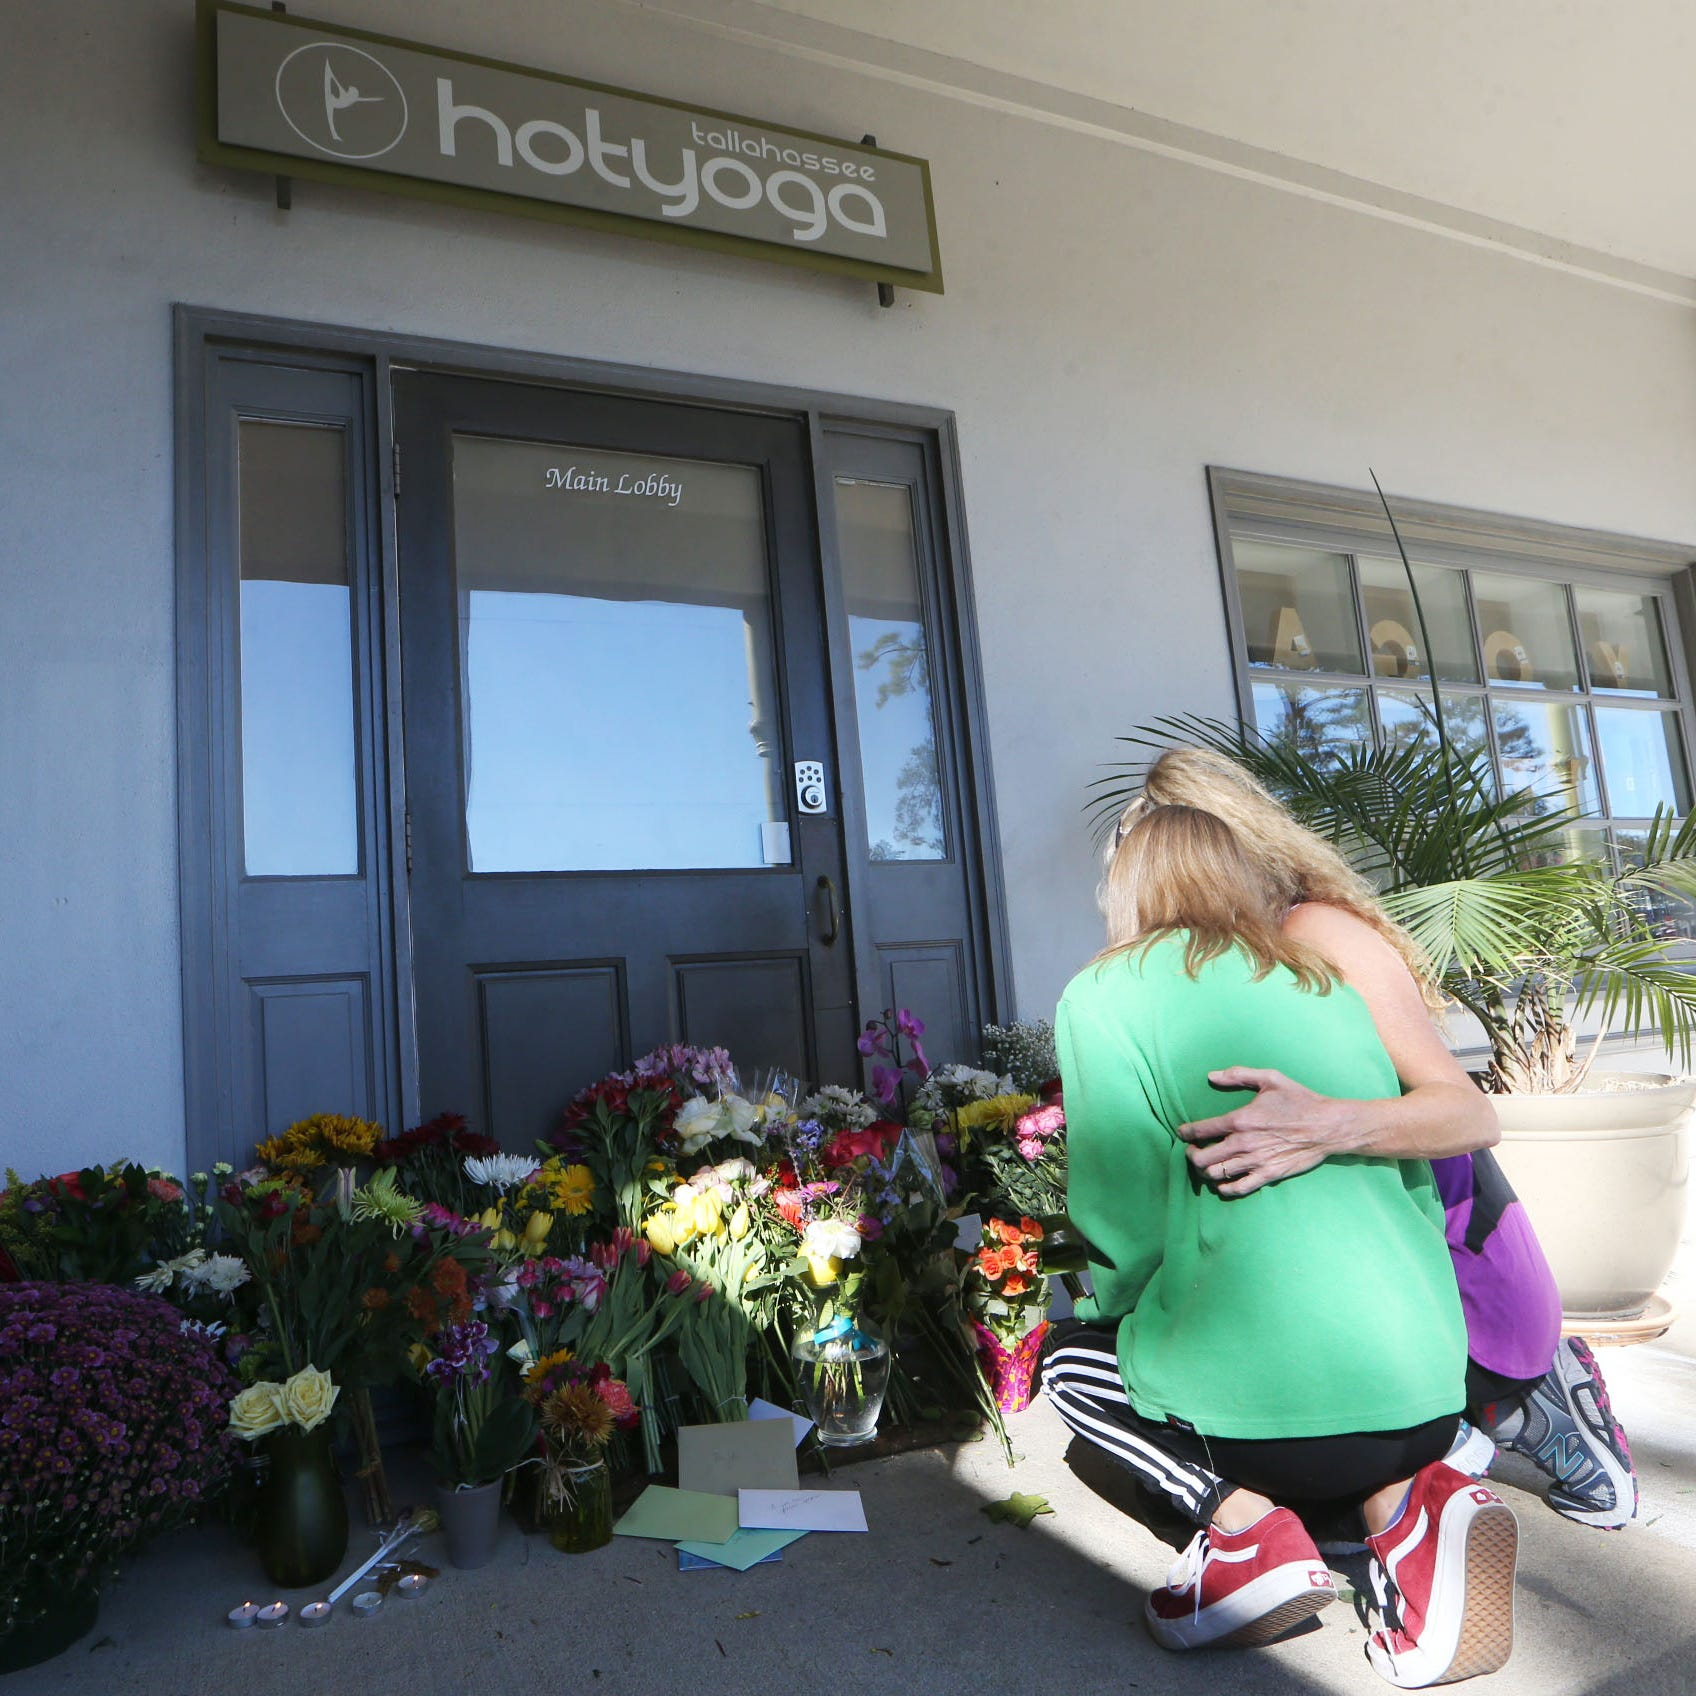 After yoga studio shooting, 'namaste' can be a community rallying cry | Skip Foster